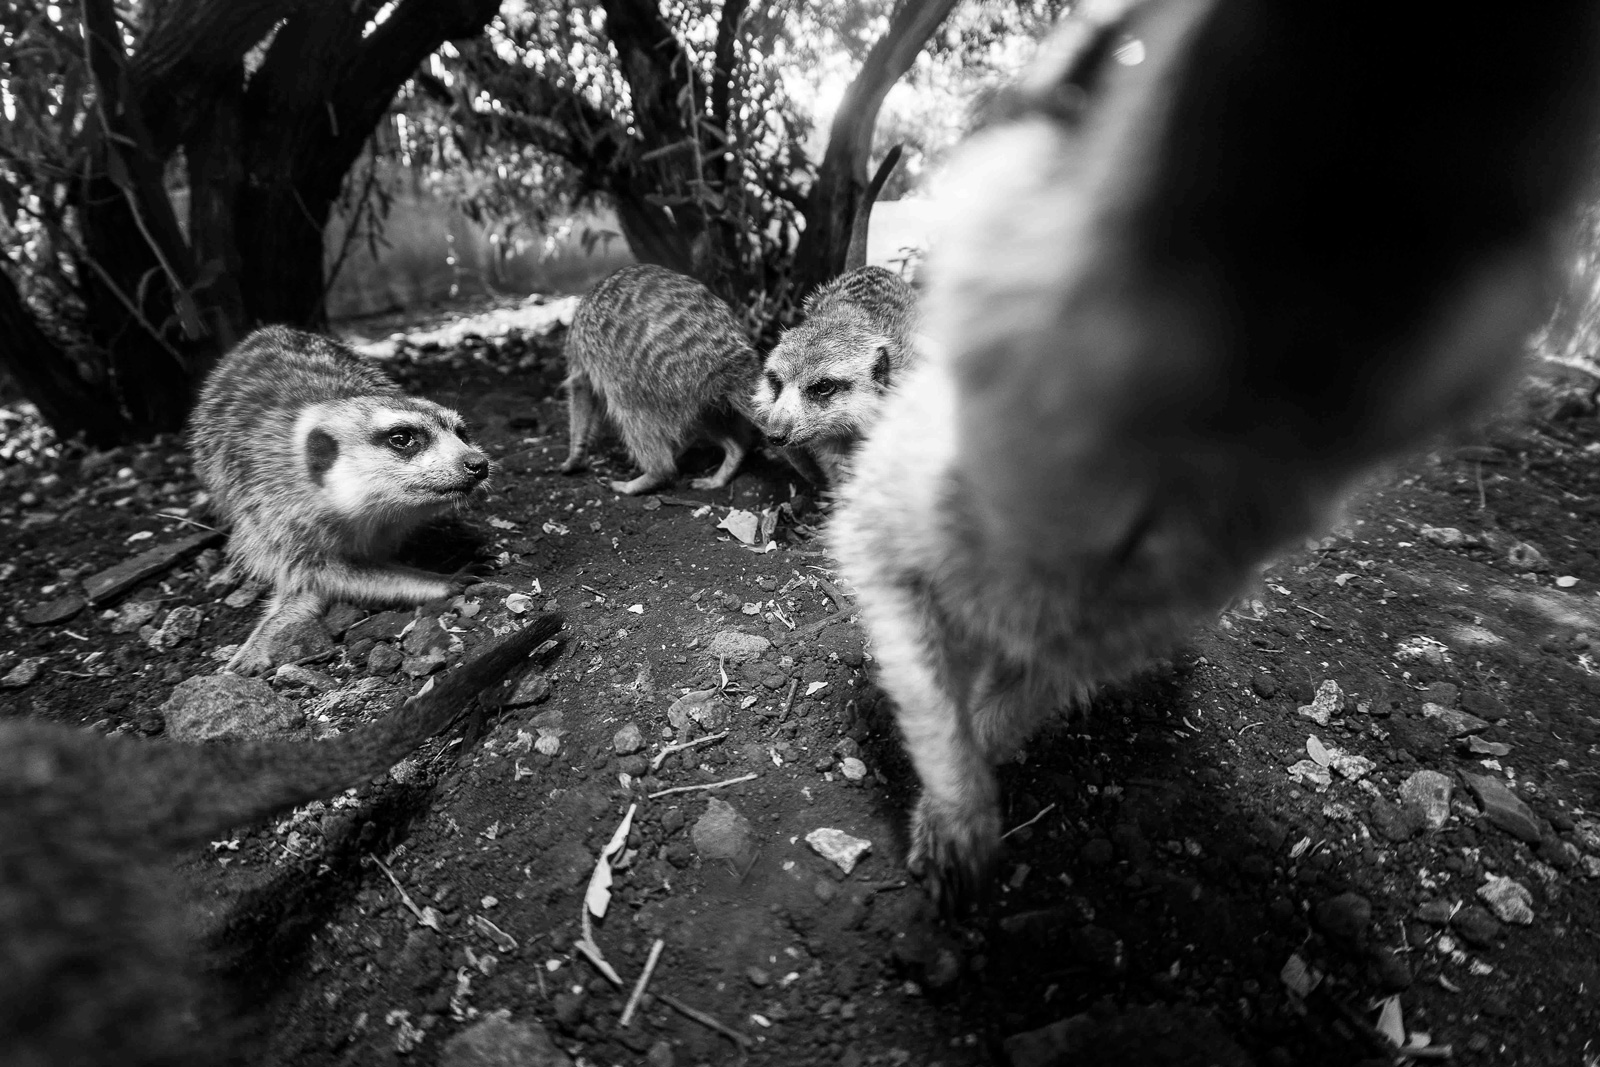 "Meerkats face more real threats from wild adversaries like birds of prey ©<a href=""http://www.homoambiens.com/ha/homoambiens_ing.php"" target=""_blank"">Homo Ambiens Photography</a>"